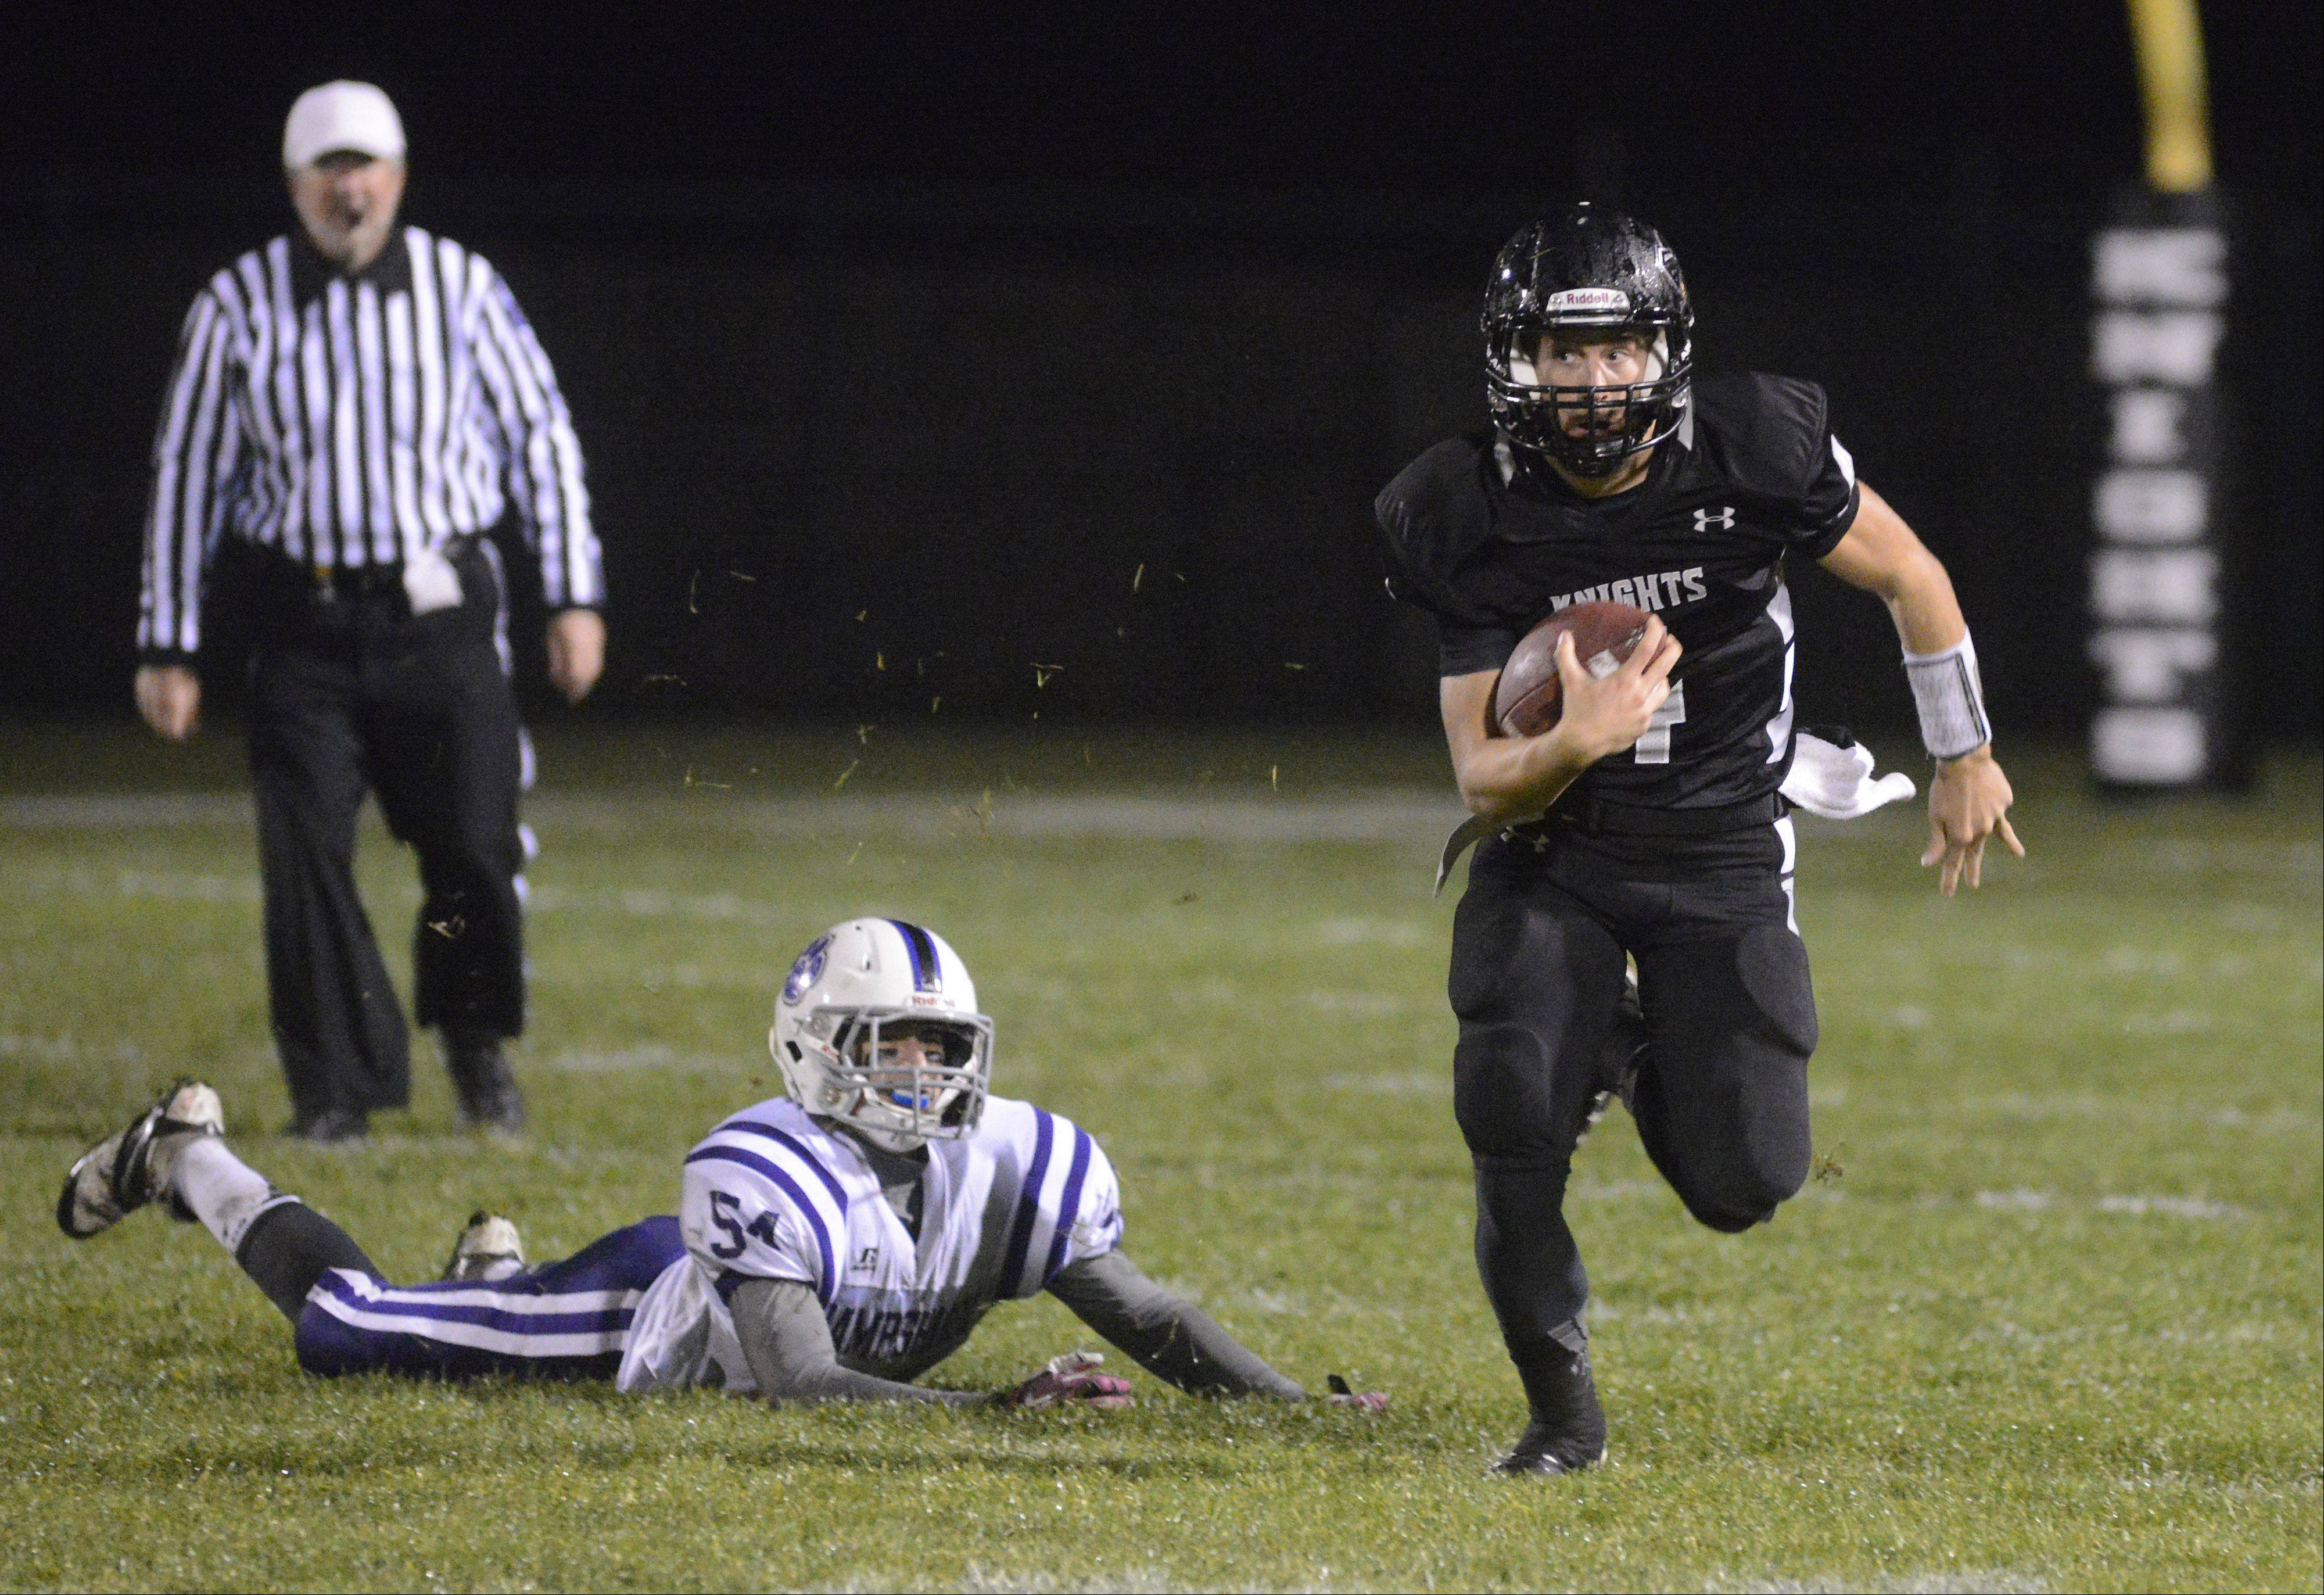 Kaneland's Drew David shakes Hampshire's Mike Palazzolo off in the first quarter on Friday, November 1.